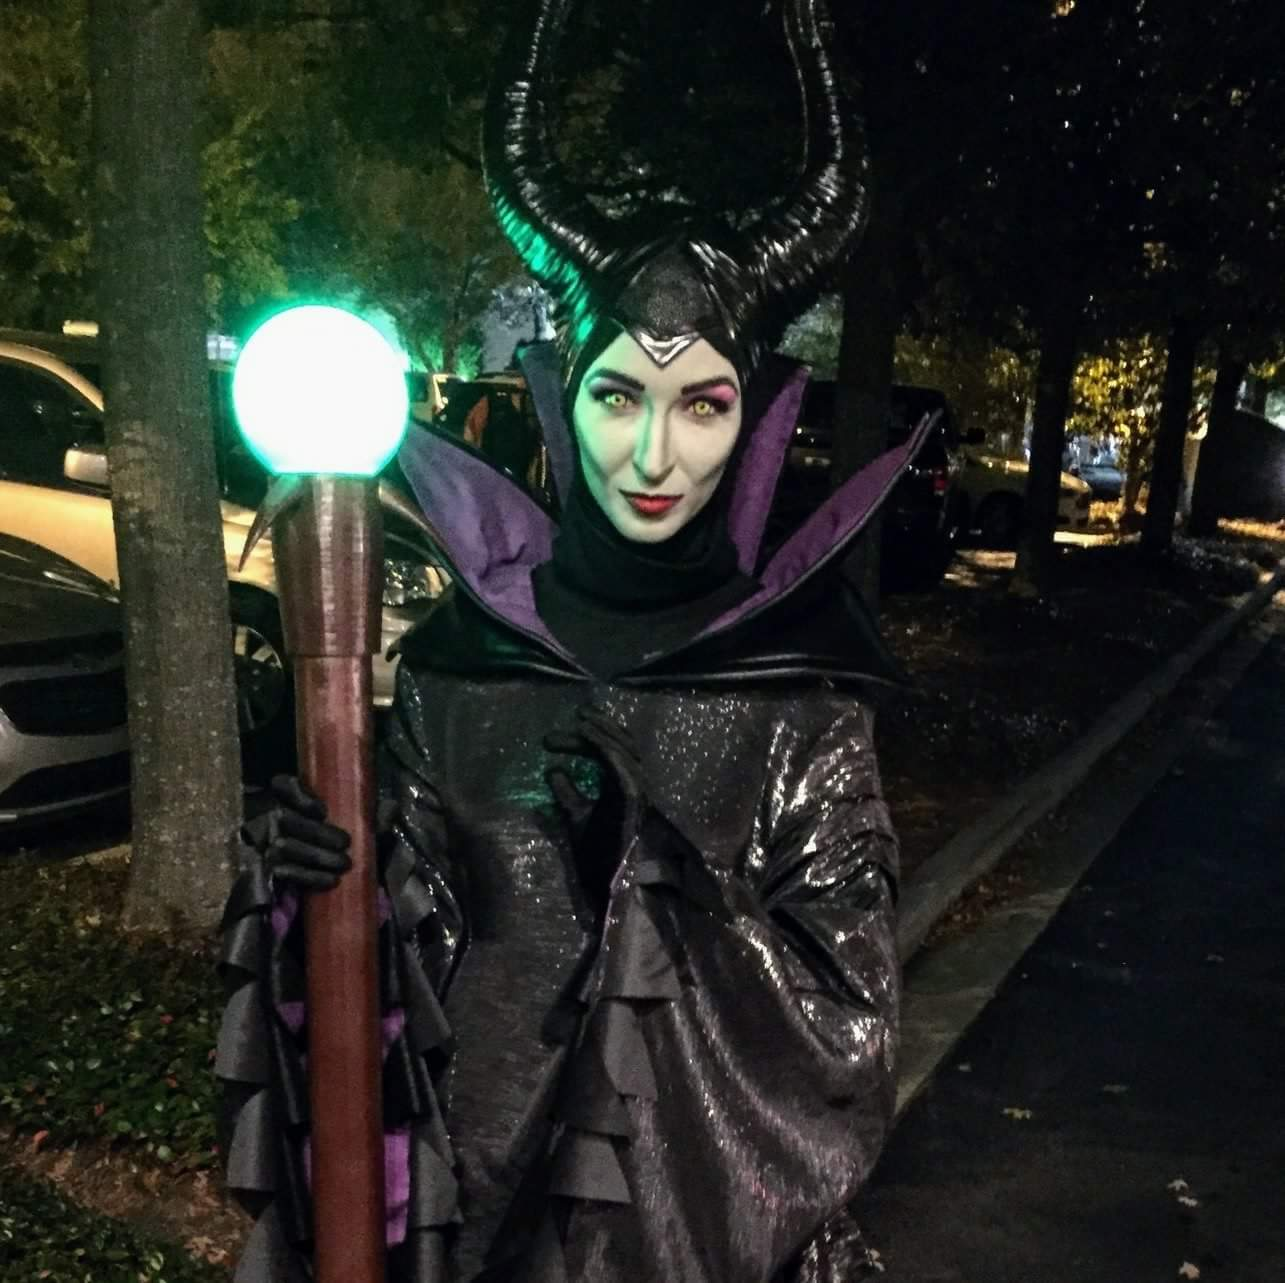 Animated Maleficent Costume Can Light Up The Night